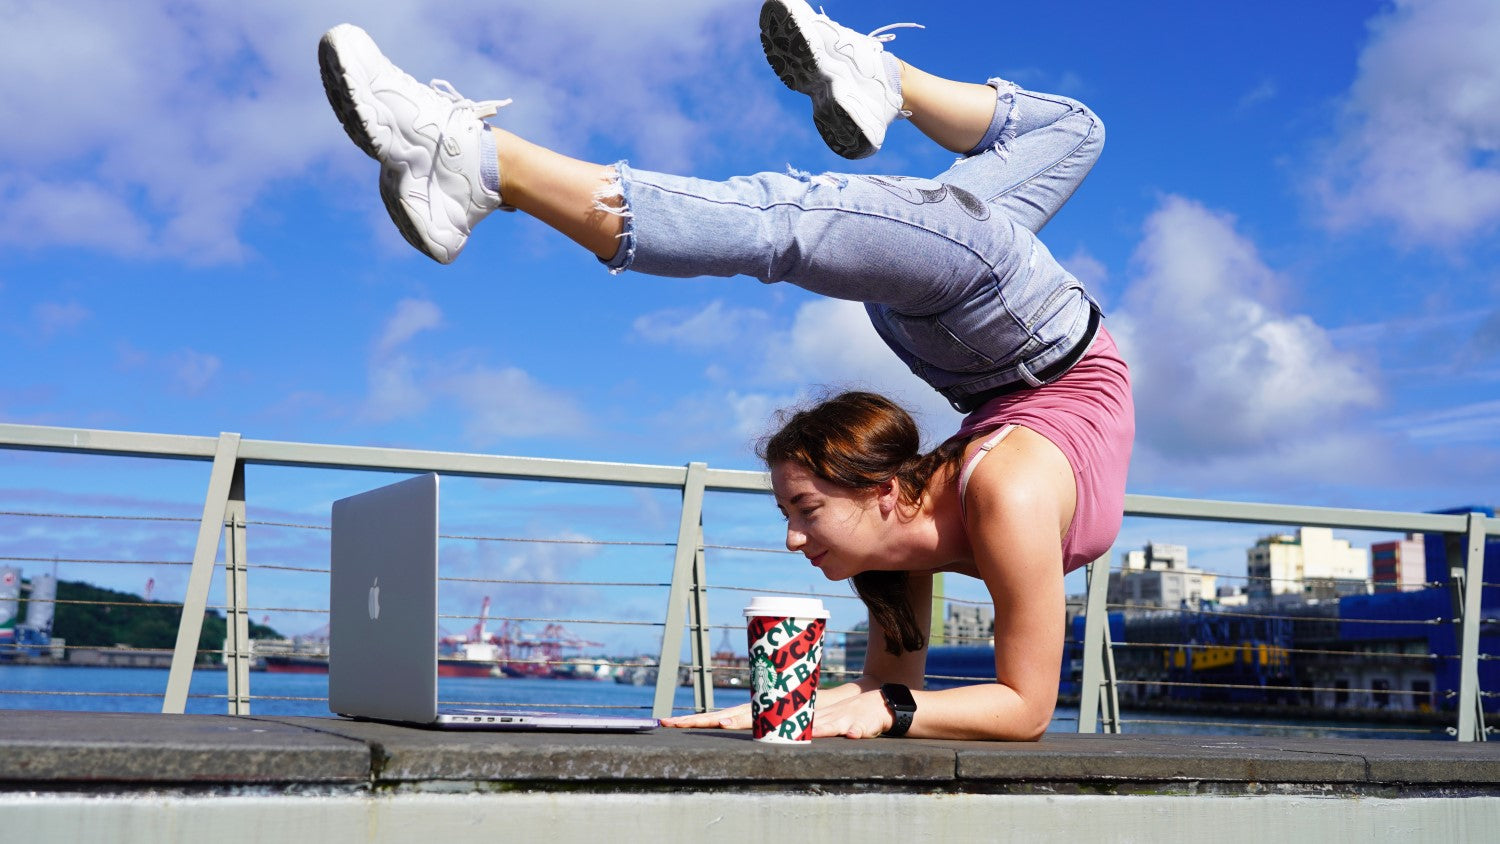 lady doing gymnastic with coffee in front